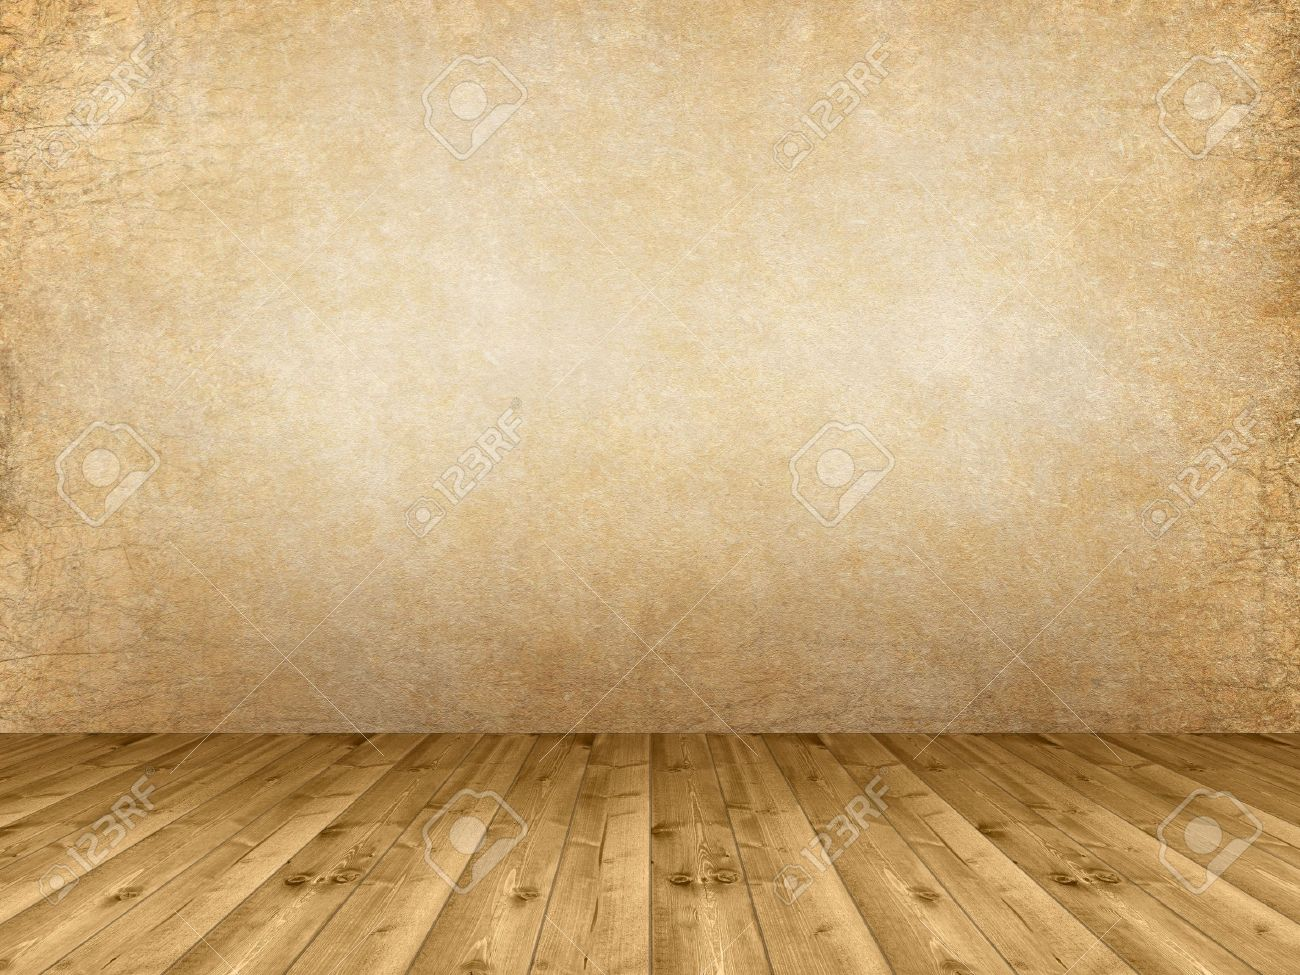 Interior background - wooden floor and grunge wall Stock Photo - 12638429